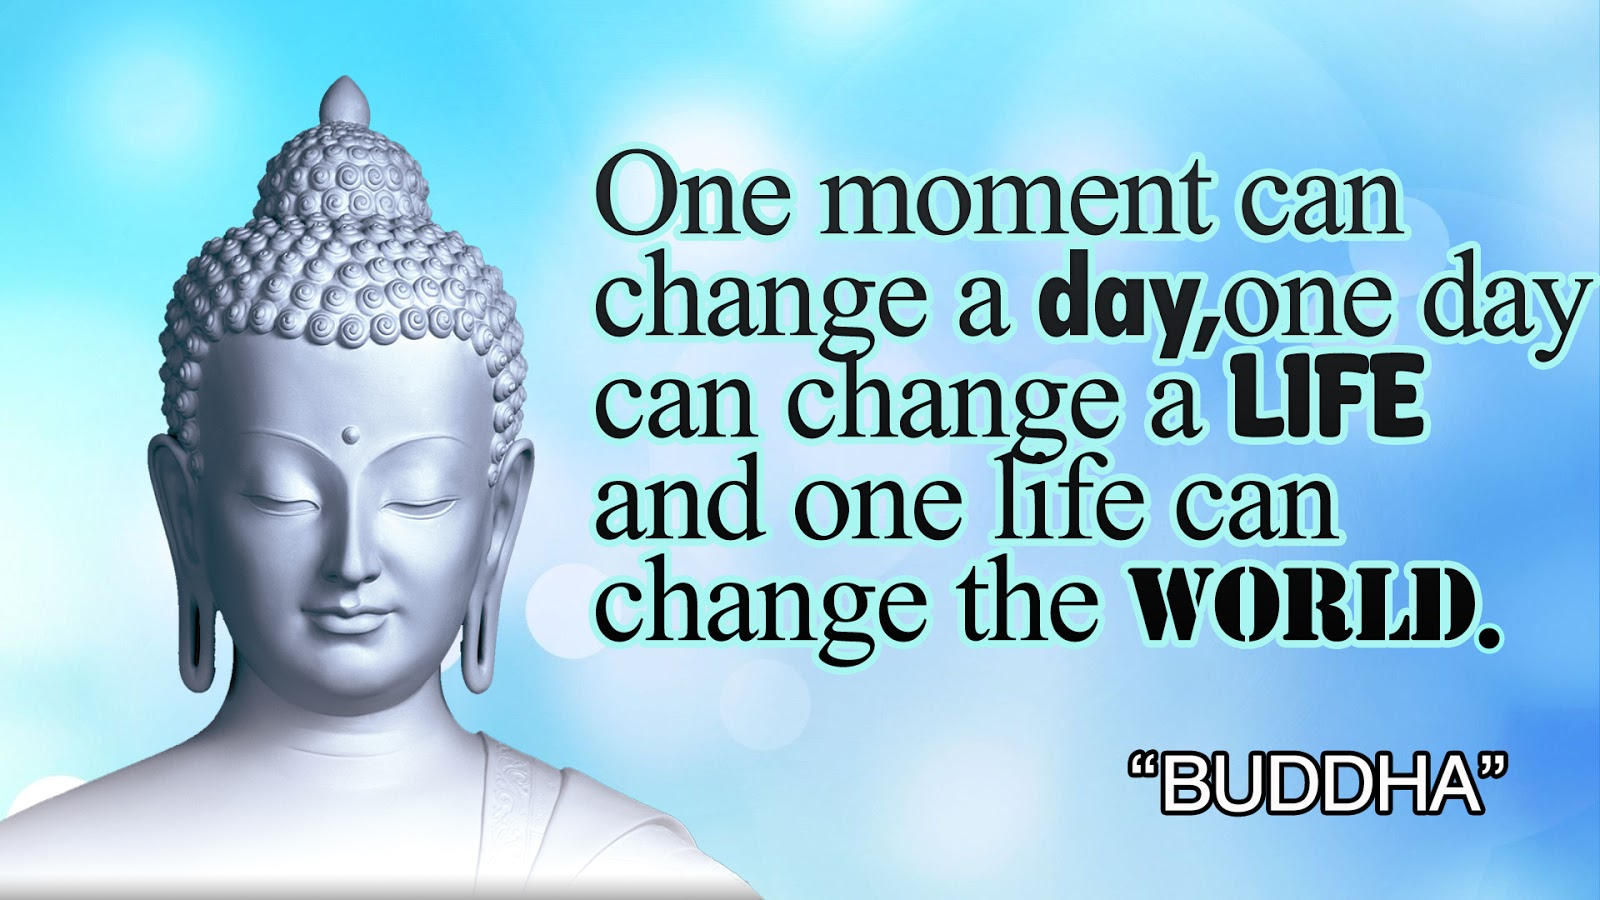 Buddha Quotes About Love Top 10 Famous Buddha Quotes With Pictures. Juicy Quote